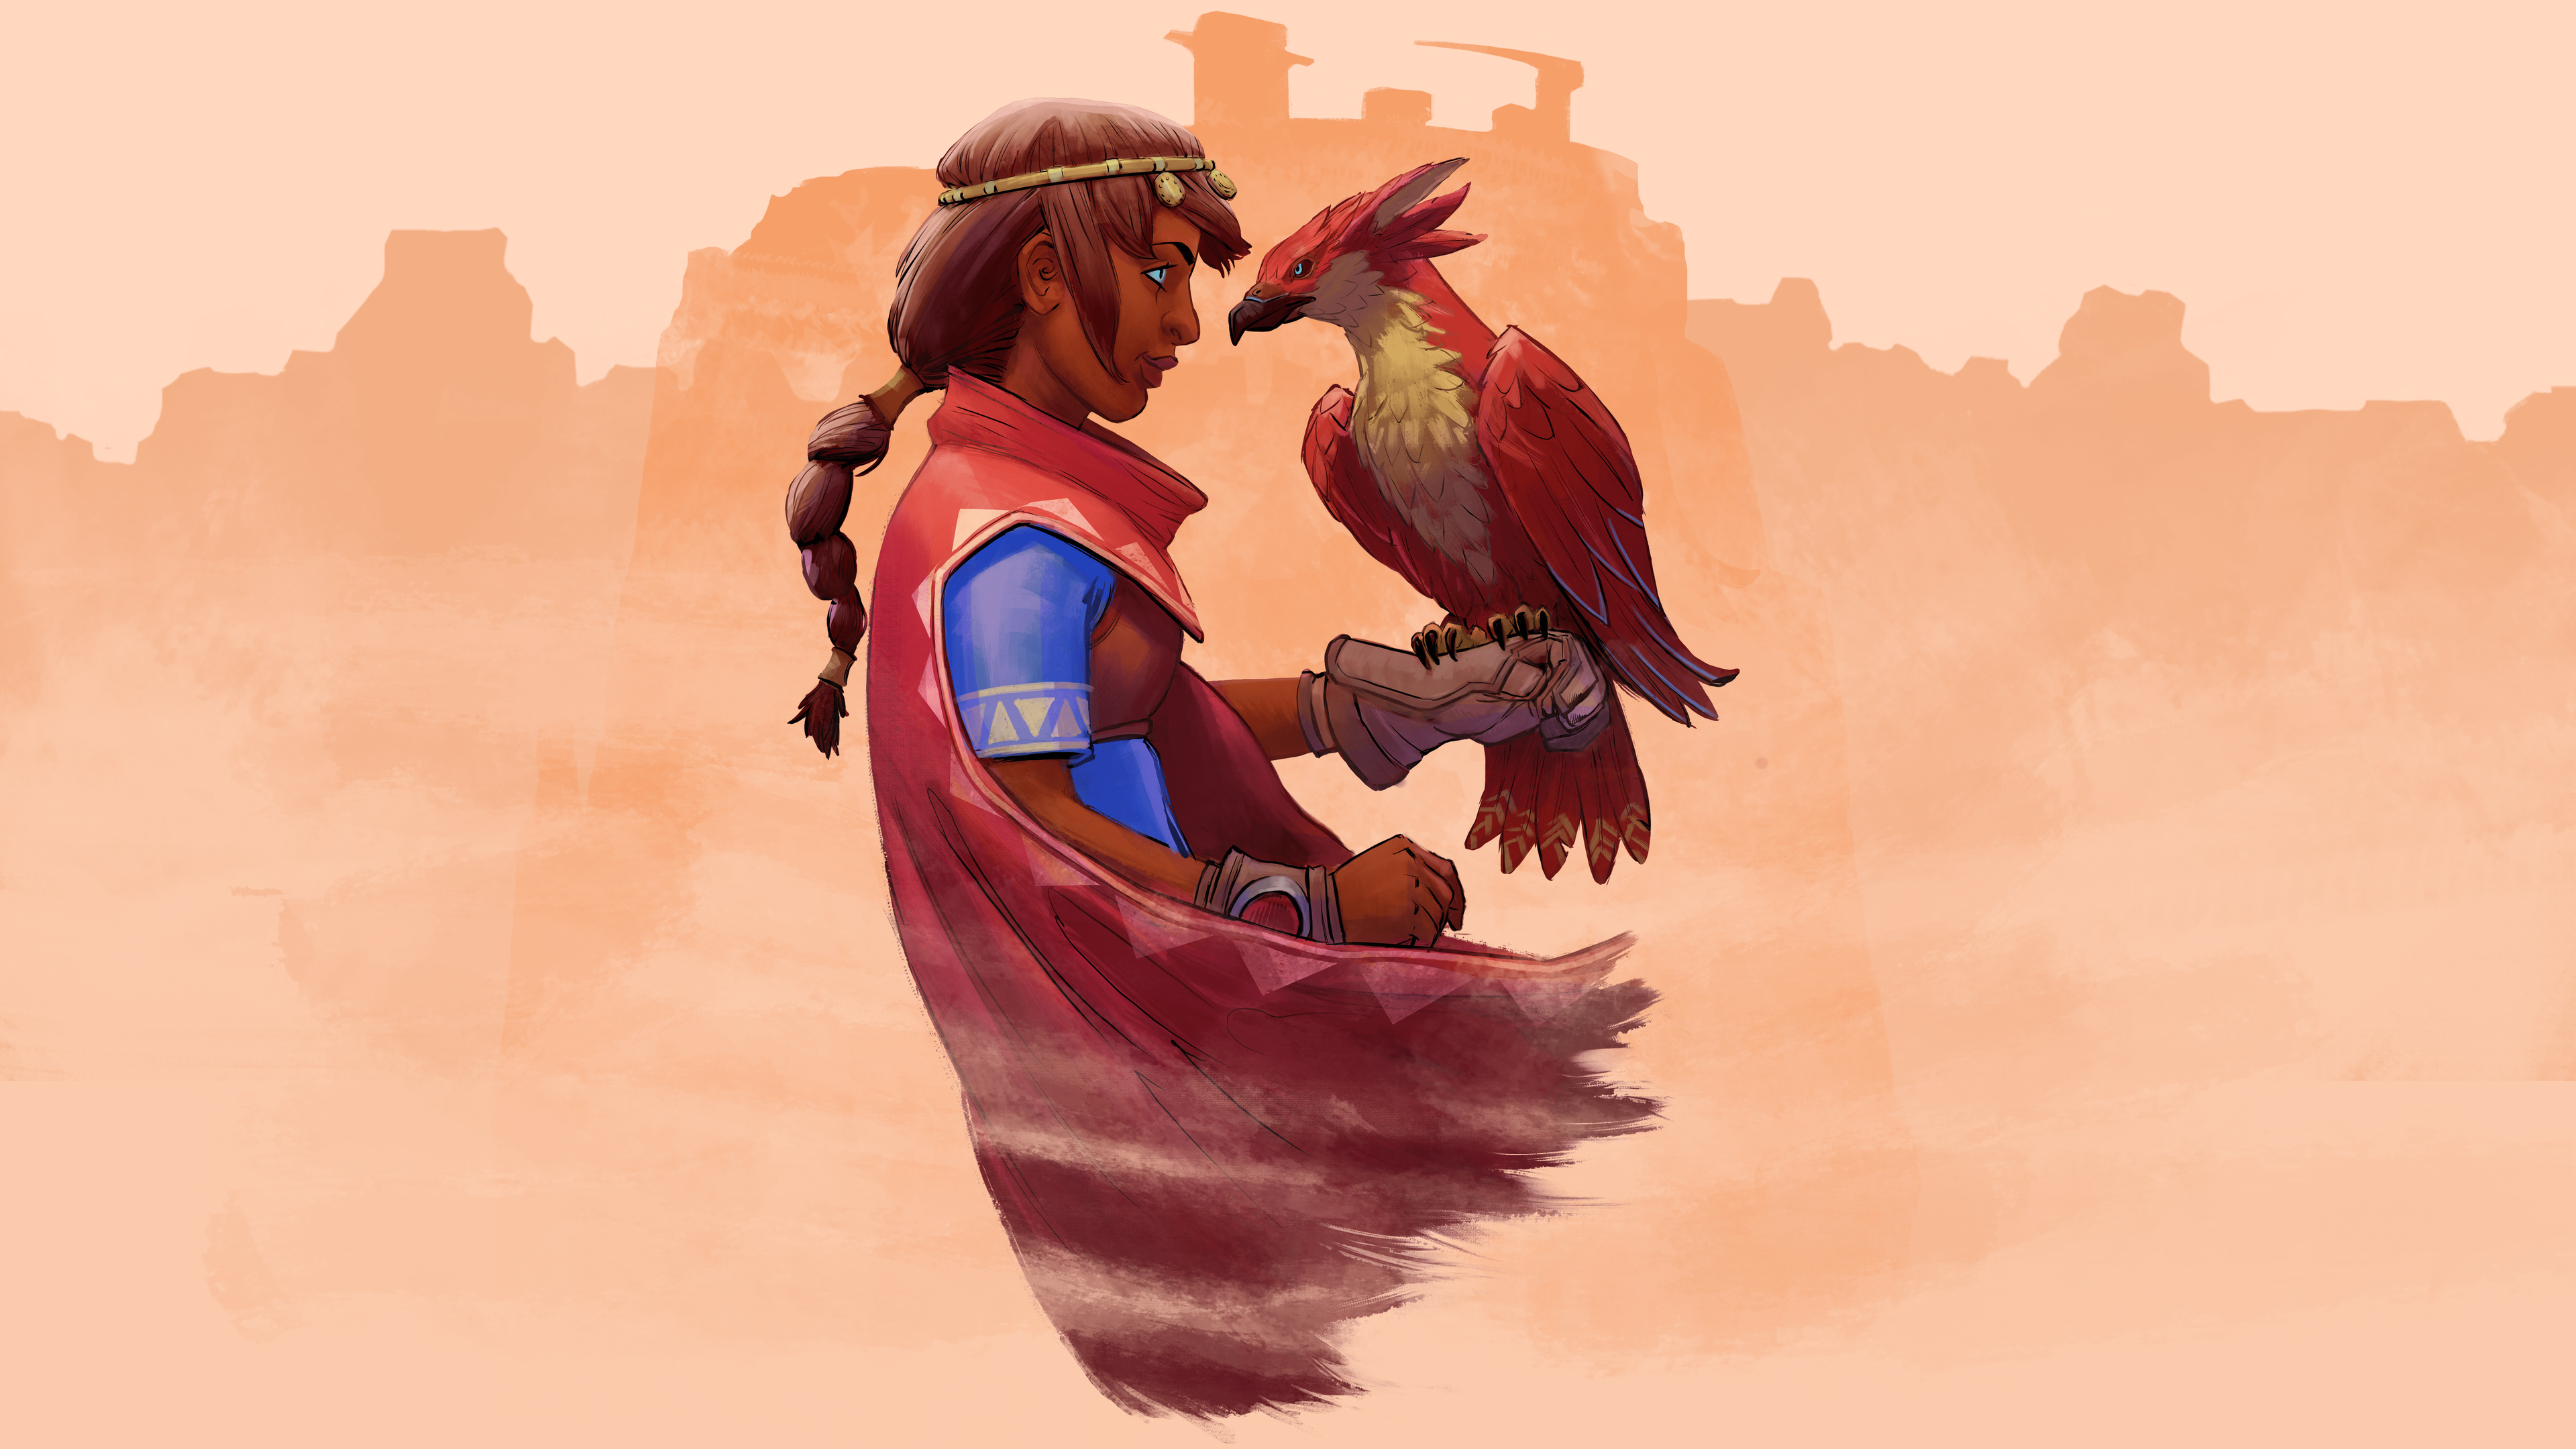 falcon age 1565054492 - Falcon Age - hd-wallpapers, games wallpapers, 8k wallpapers, 5k wallpapers, 4k-wallpapers